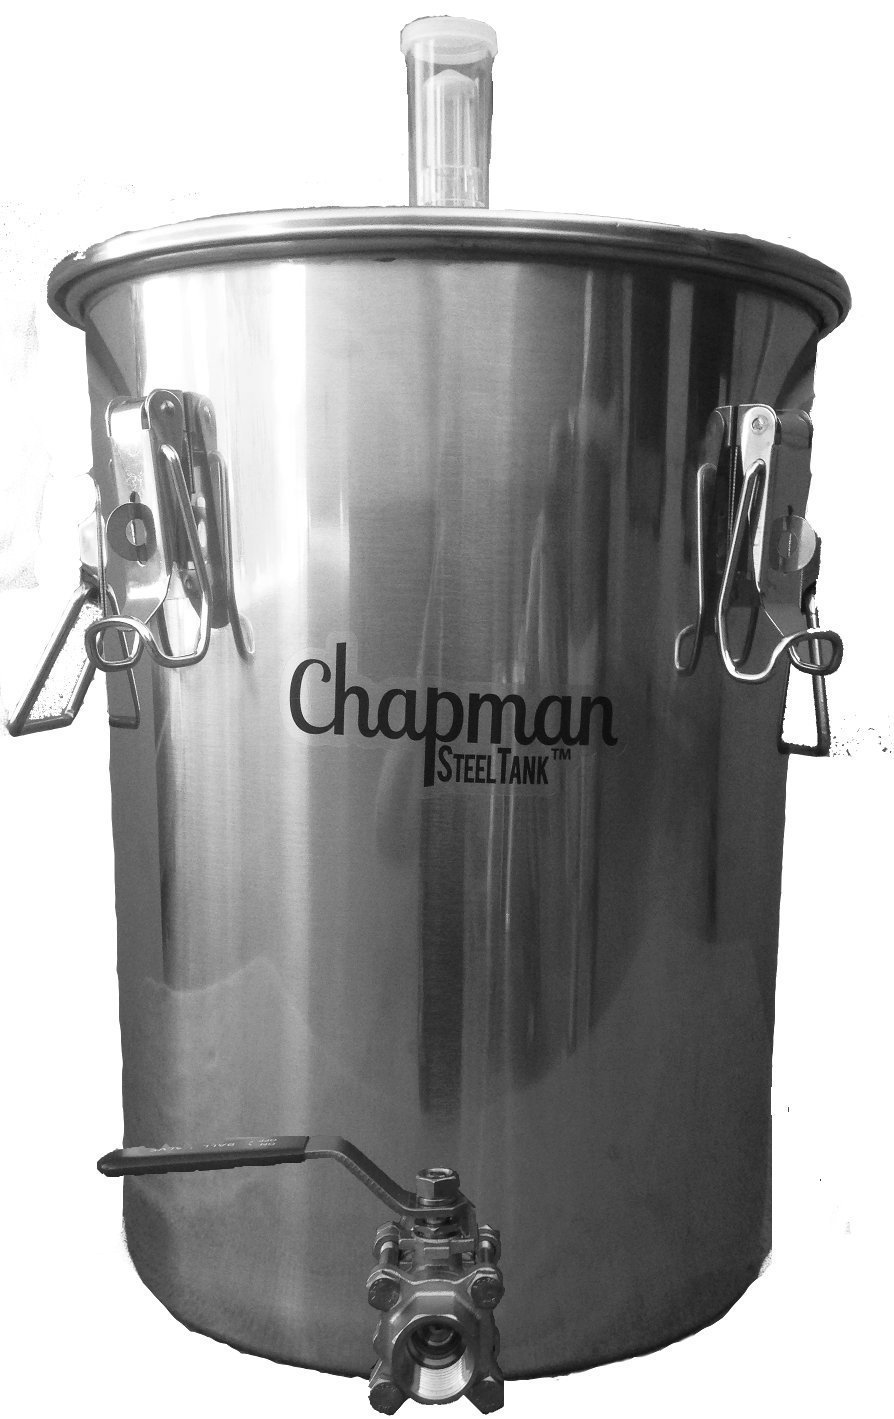 Chapman Brewing Equipment 7 Gallon Stainless Steel PORTED UniVessel Brew Fermenter Combo, Includes 8oz B-Brite Cleaner!